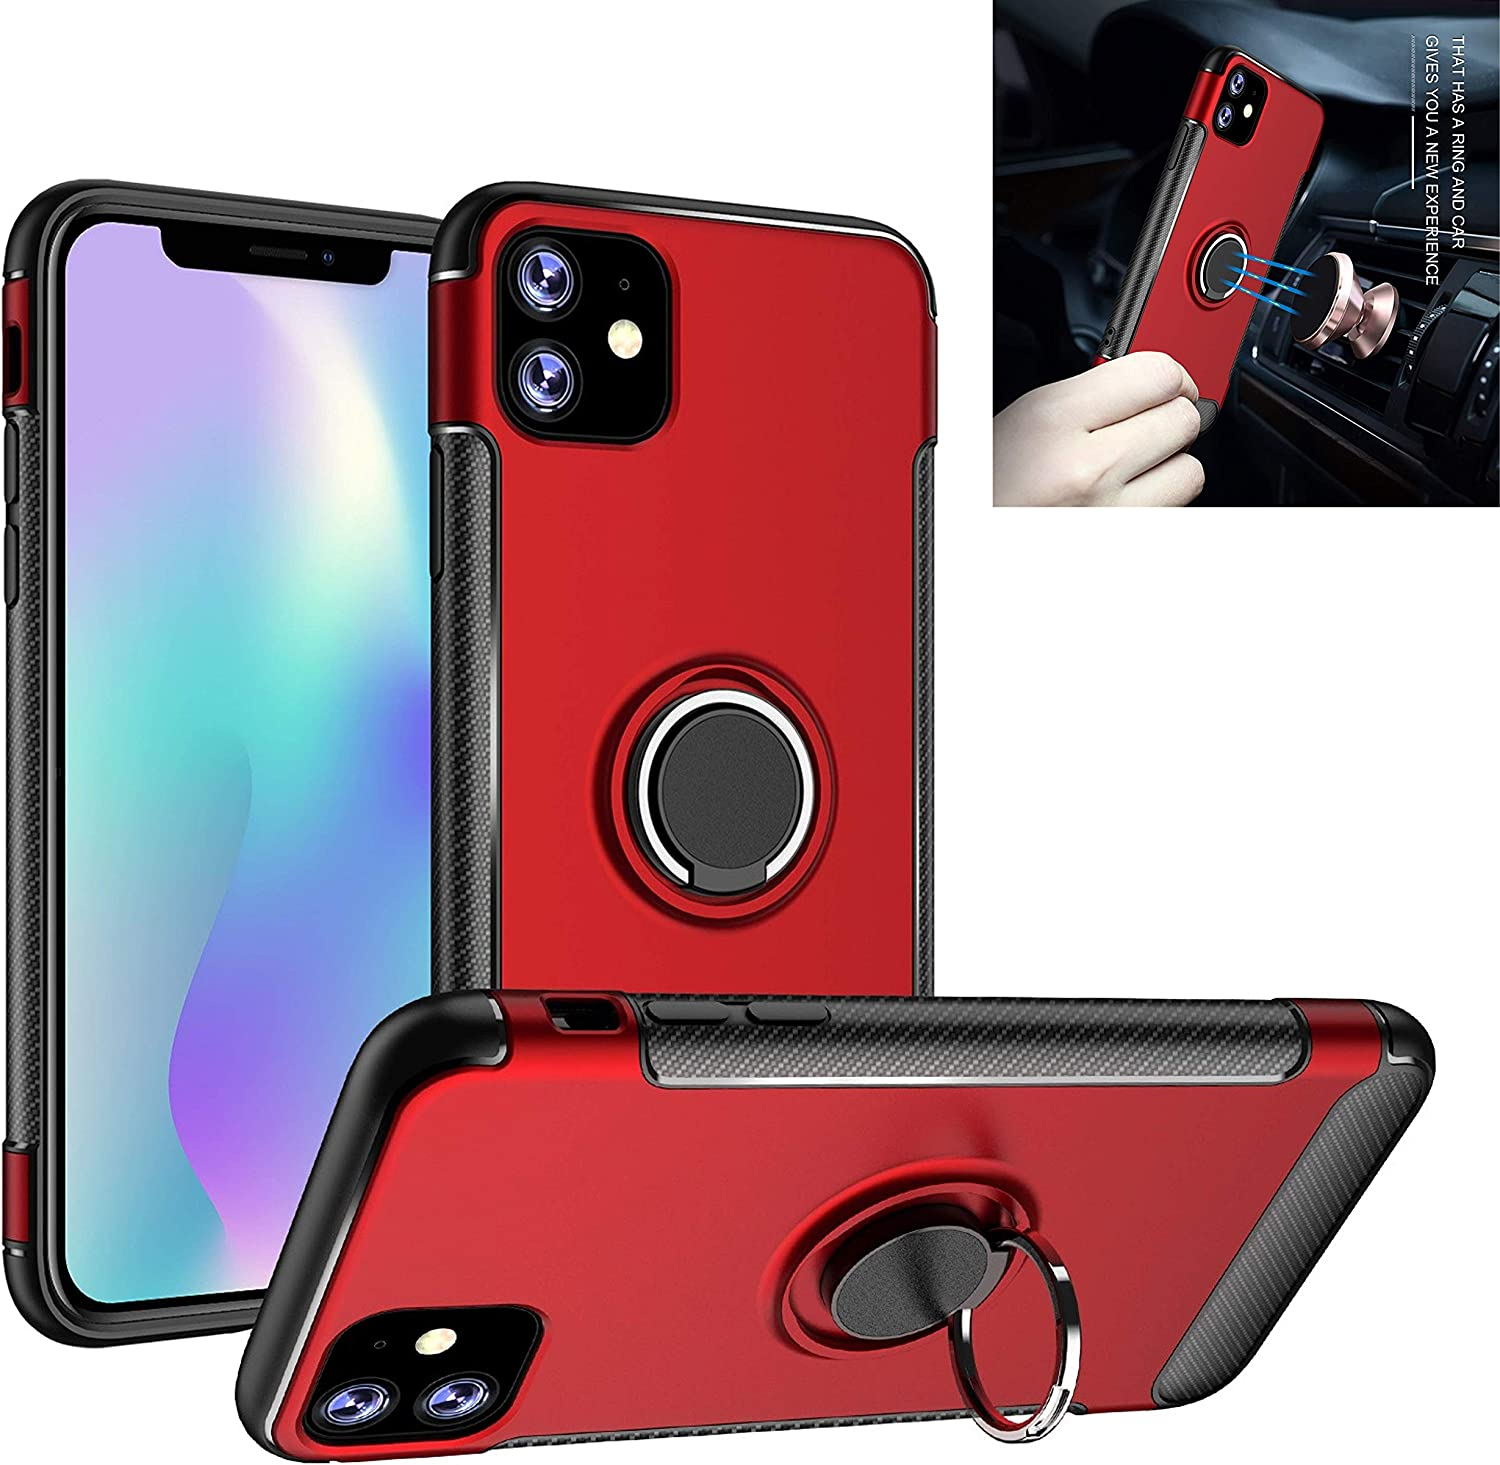 iphone 11 6.1 case with Kickstand - Ultra Slim 360 Degree Ring Holder Case - Full Body Protective Stand Shockproof Case with Magnetic Stand Compatible With iphone 11 6.1 ( Rose gold)